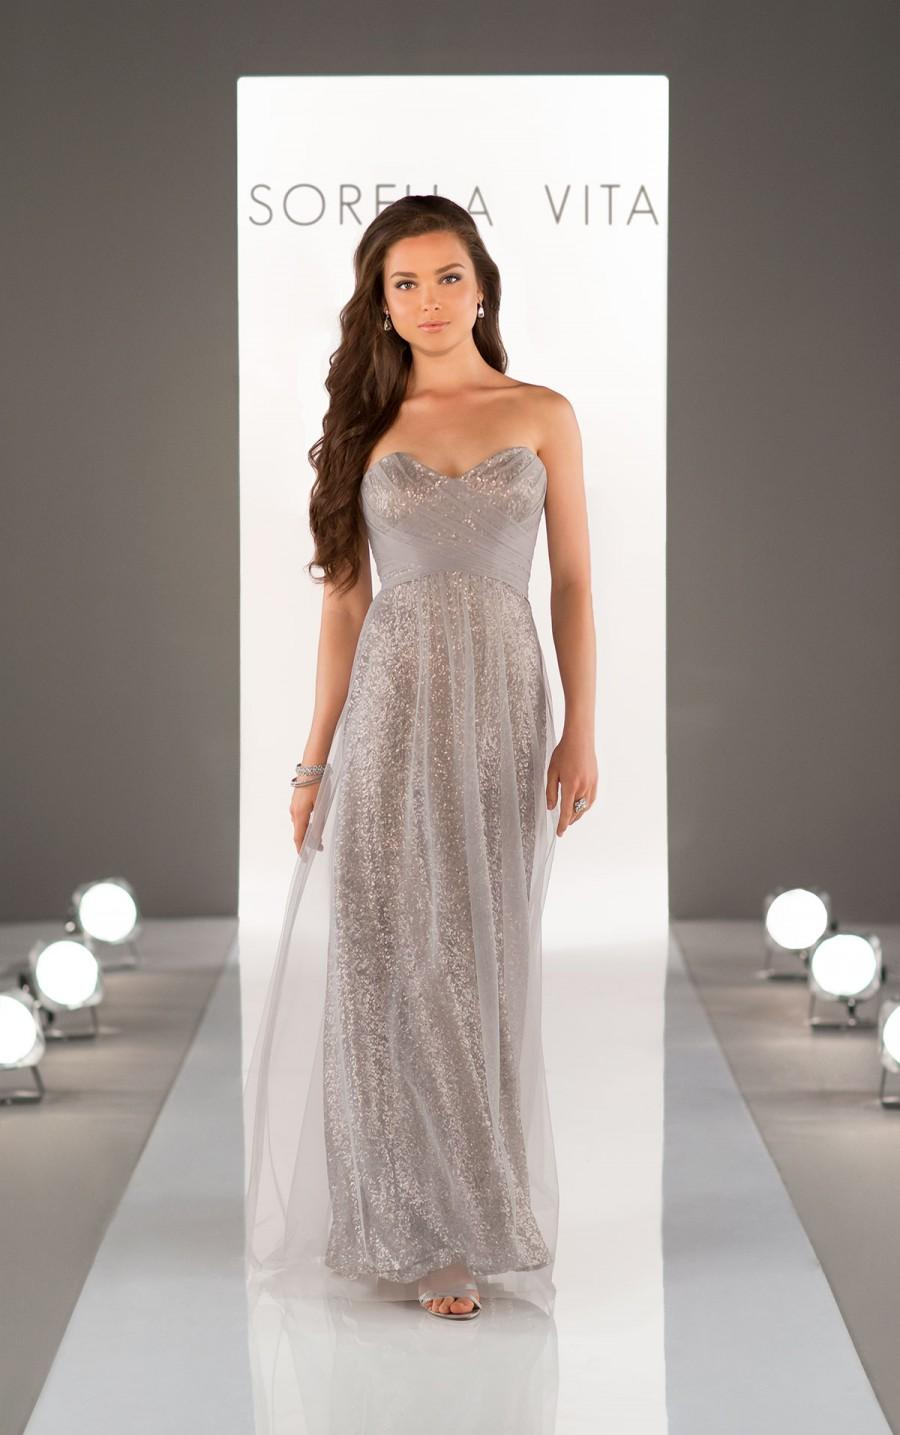 Wedding - Sorella Vita Sequin Bridesmaid Dress Style 8684